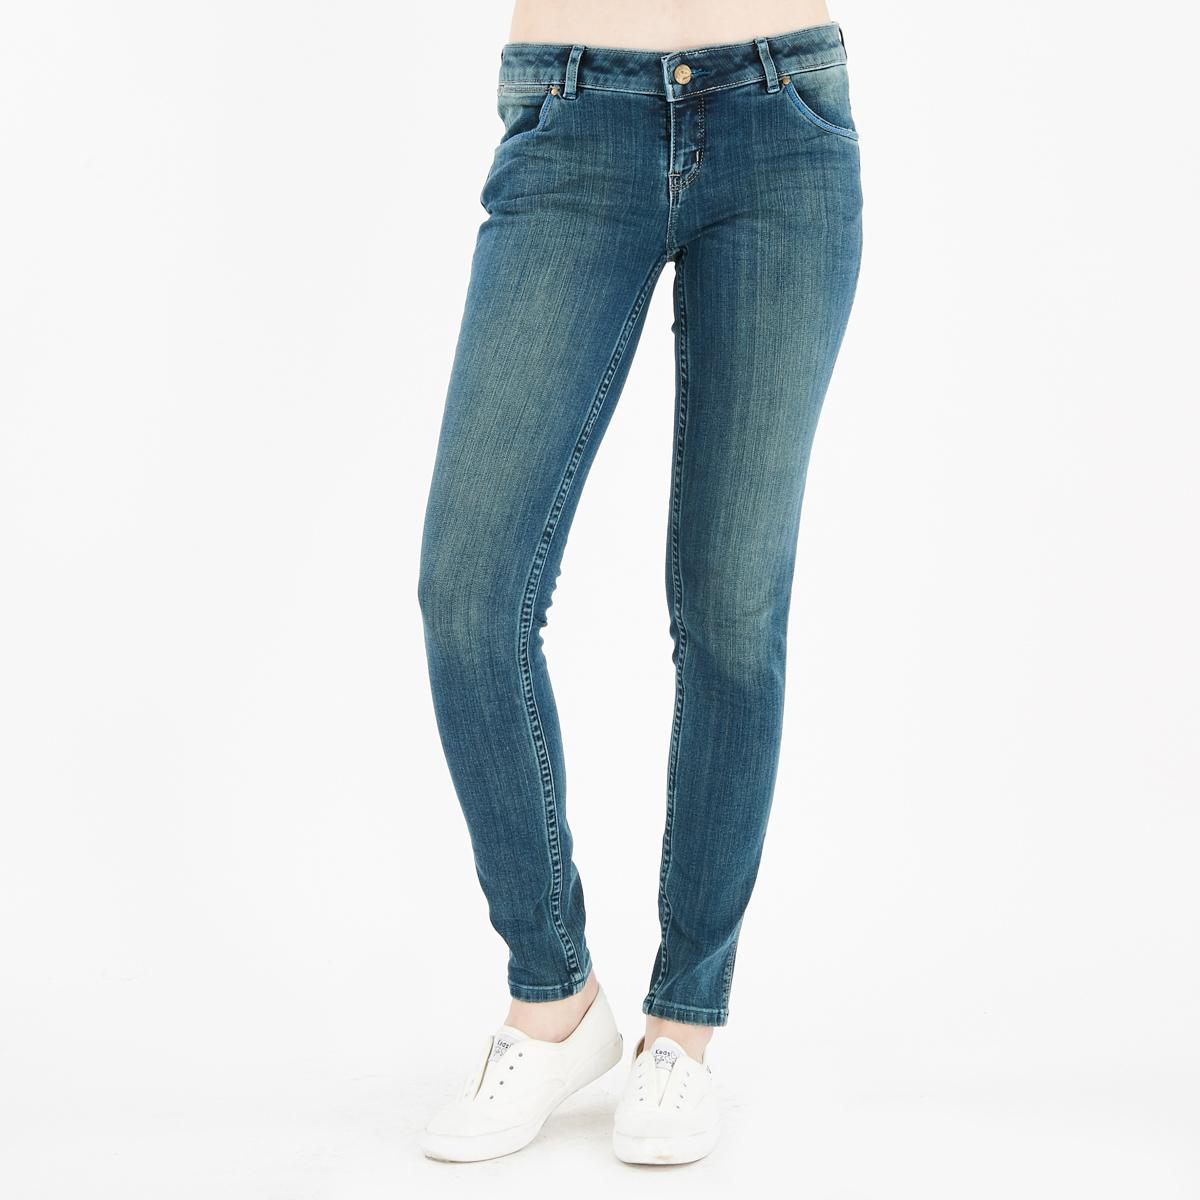 f2b9b0a14adb8 Jeggings for sale - Jeggings for Women Online Deals & Prices in ...